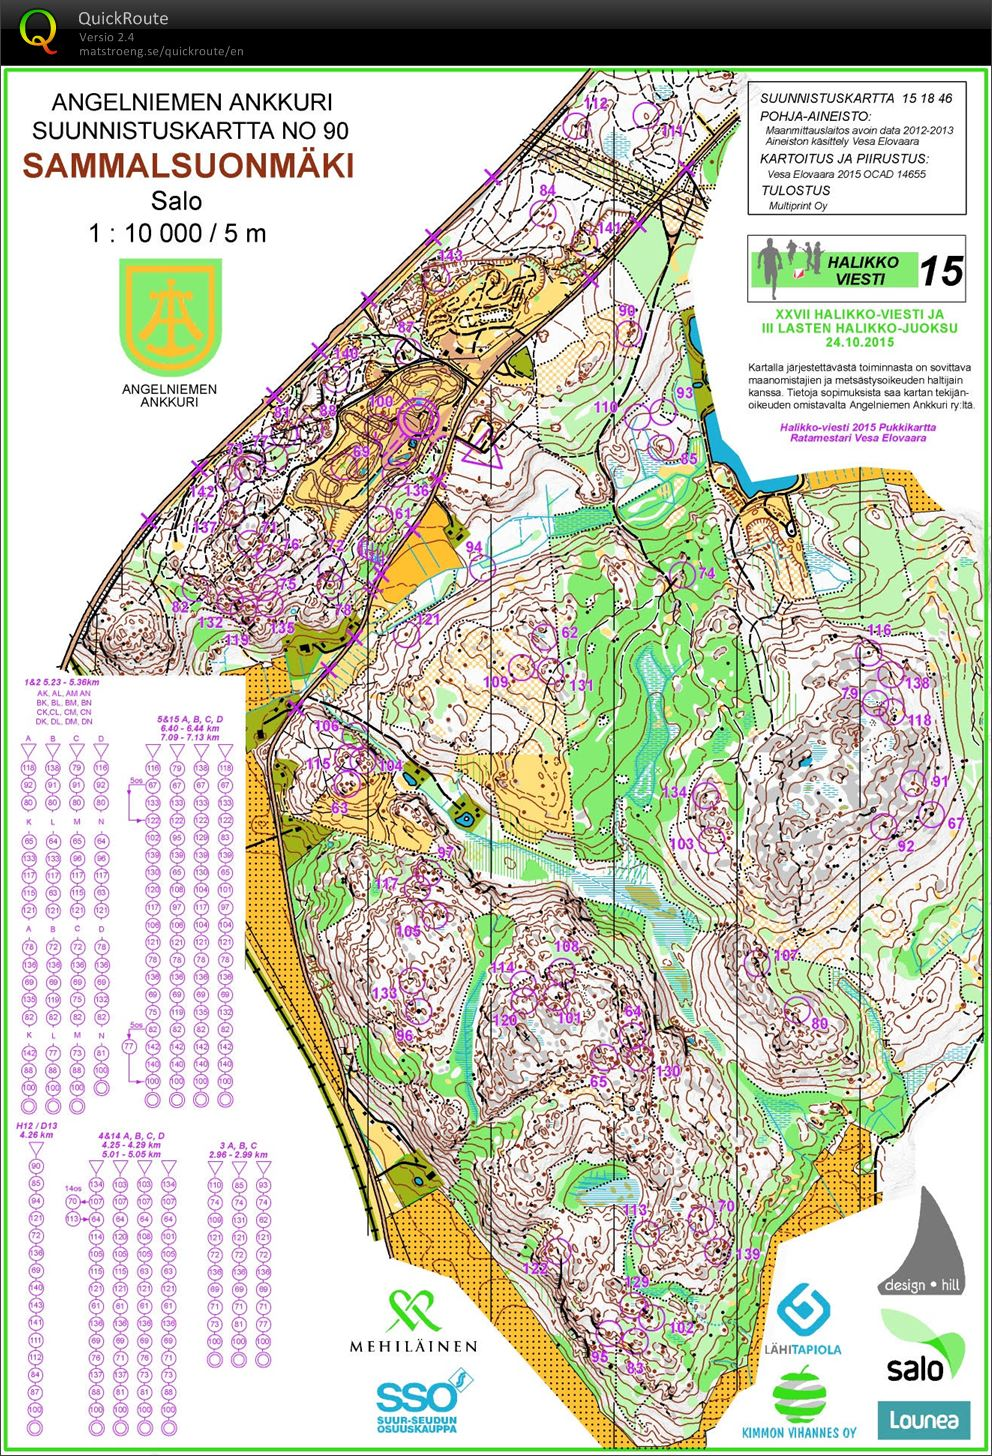 Halikko Viesti October 24th 2015 Orienteering Map From Juho Ylinen